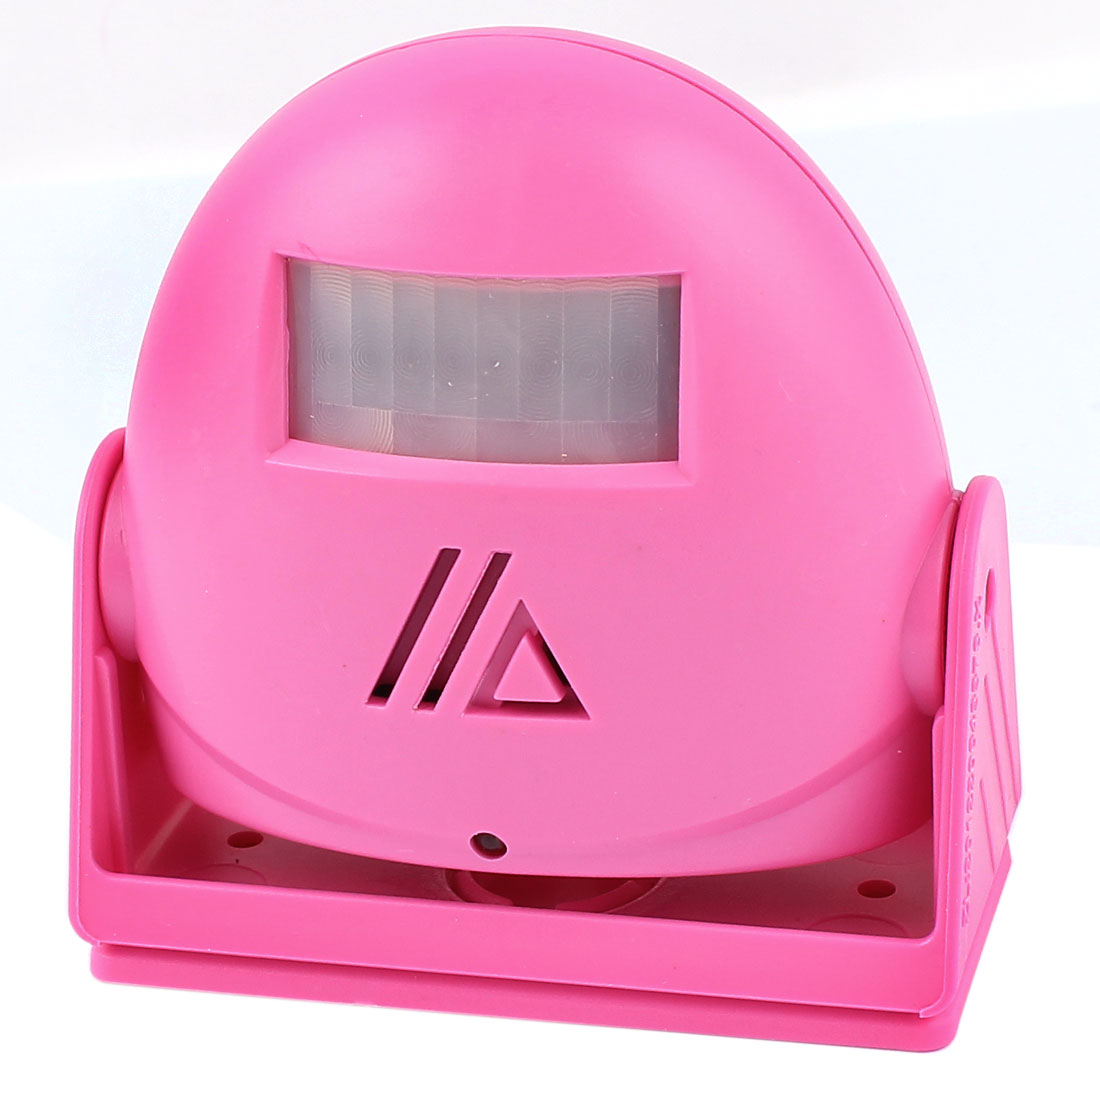 Unique Bargains Rotary Head  Sensor Music Greeting Warning Welcome Doorbell Pink